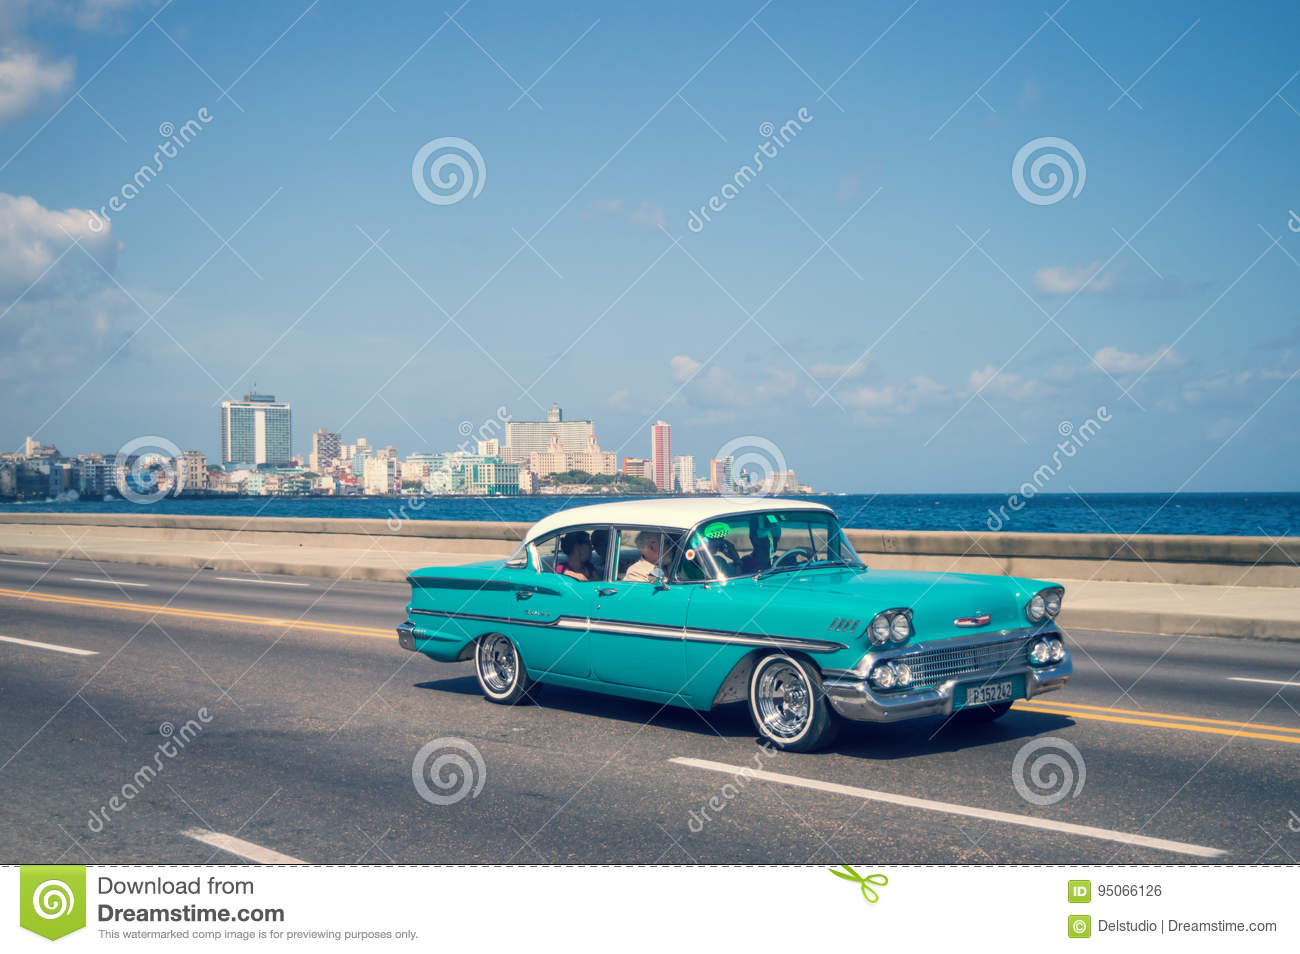 Blue Old Classic Cars On The Malecon, The Iconic Seafront Promenade ...